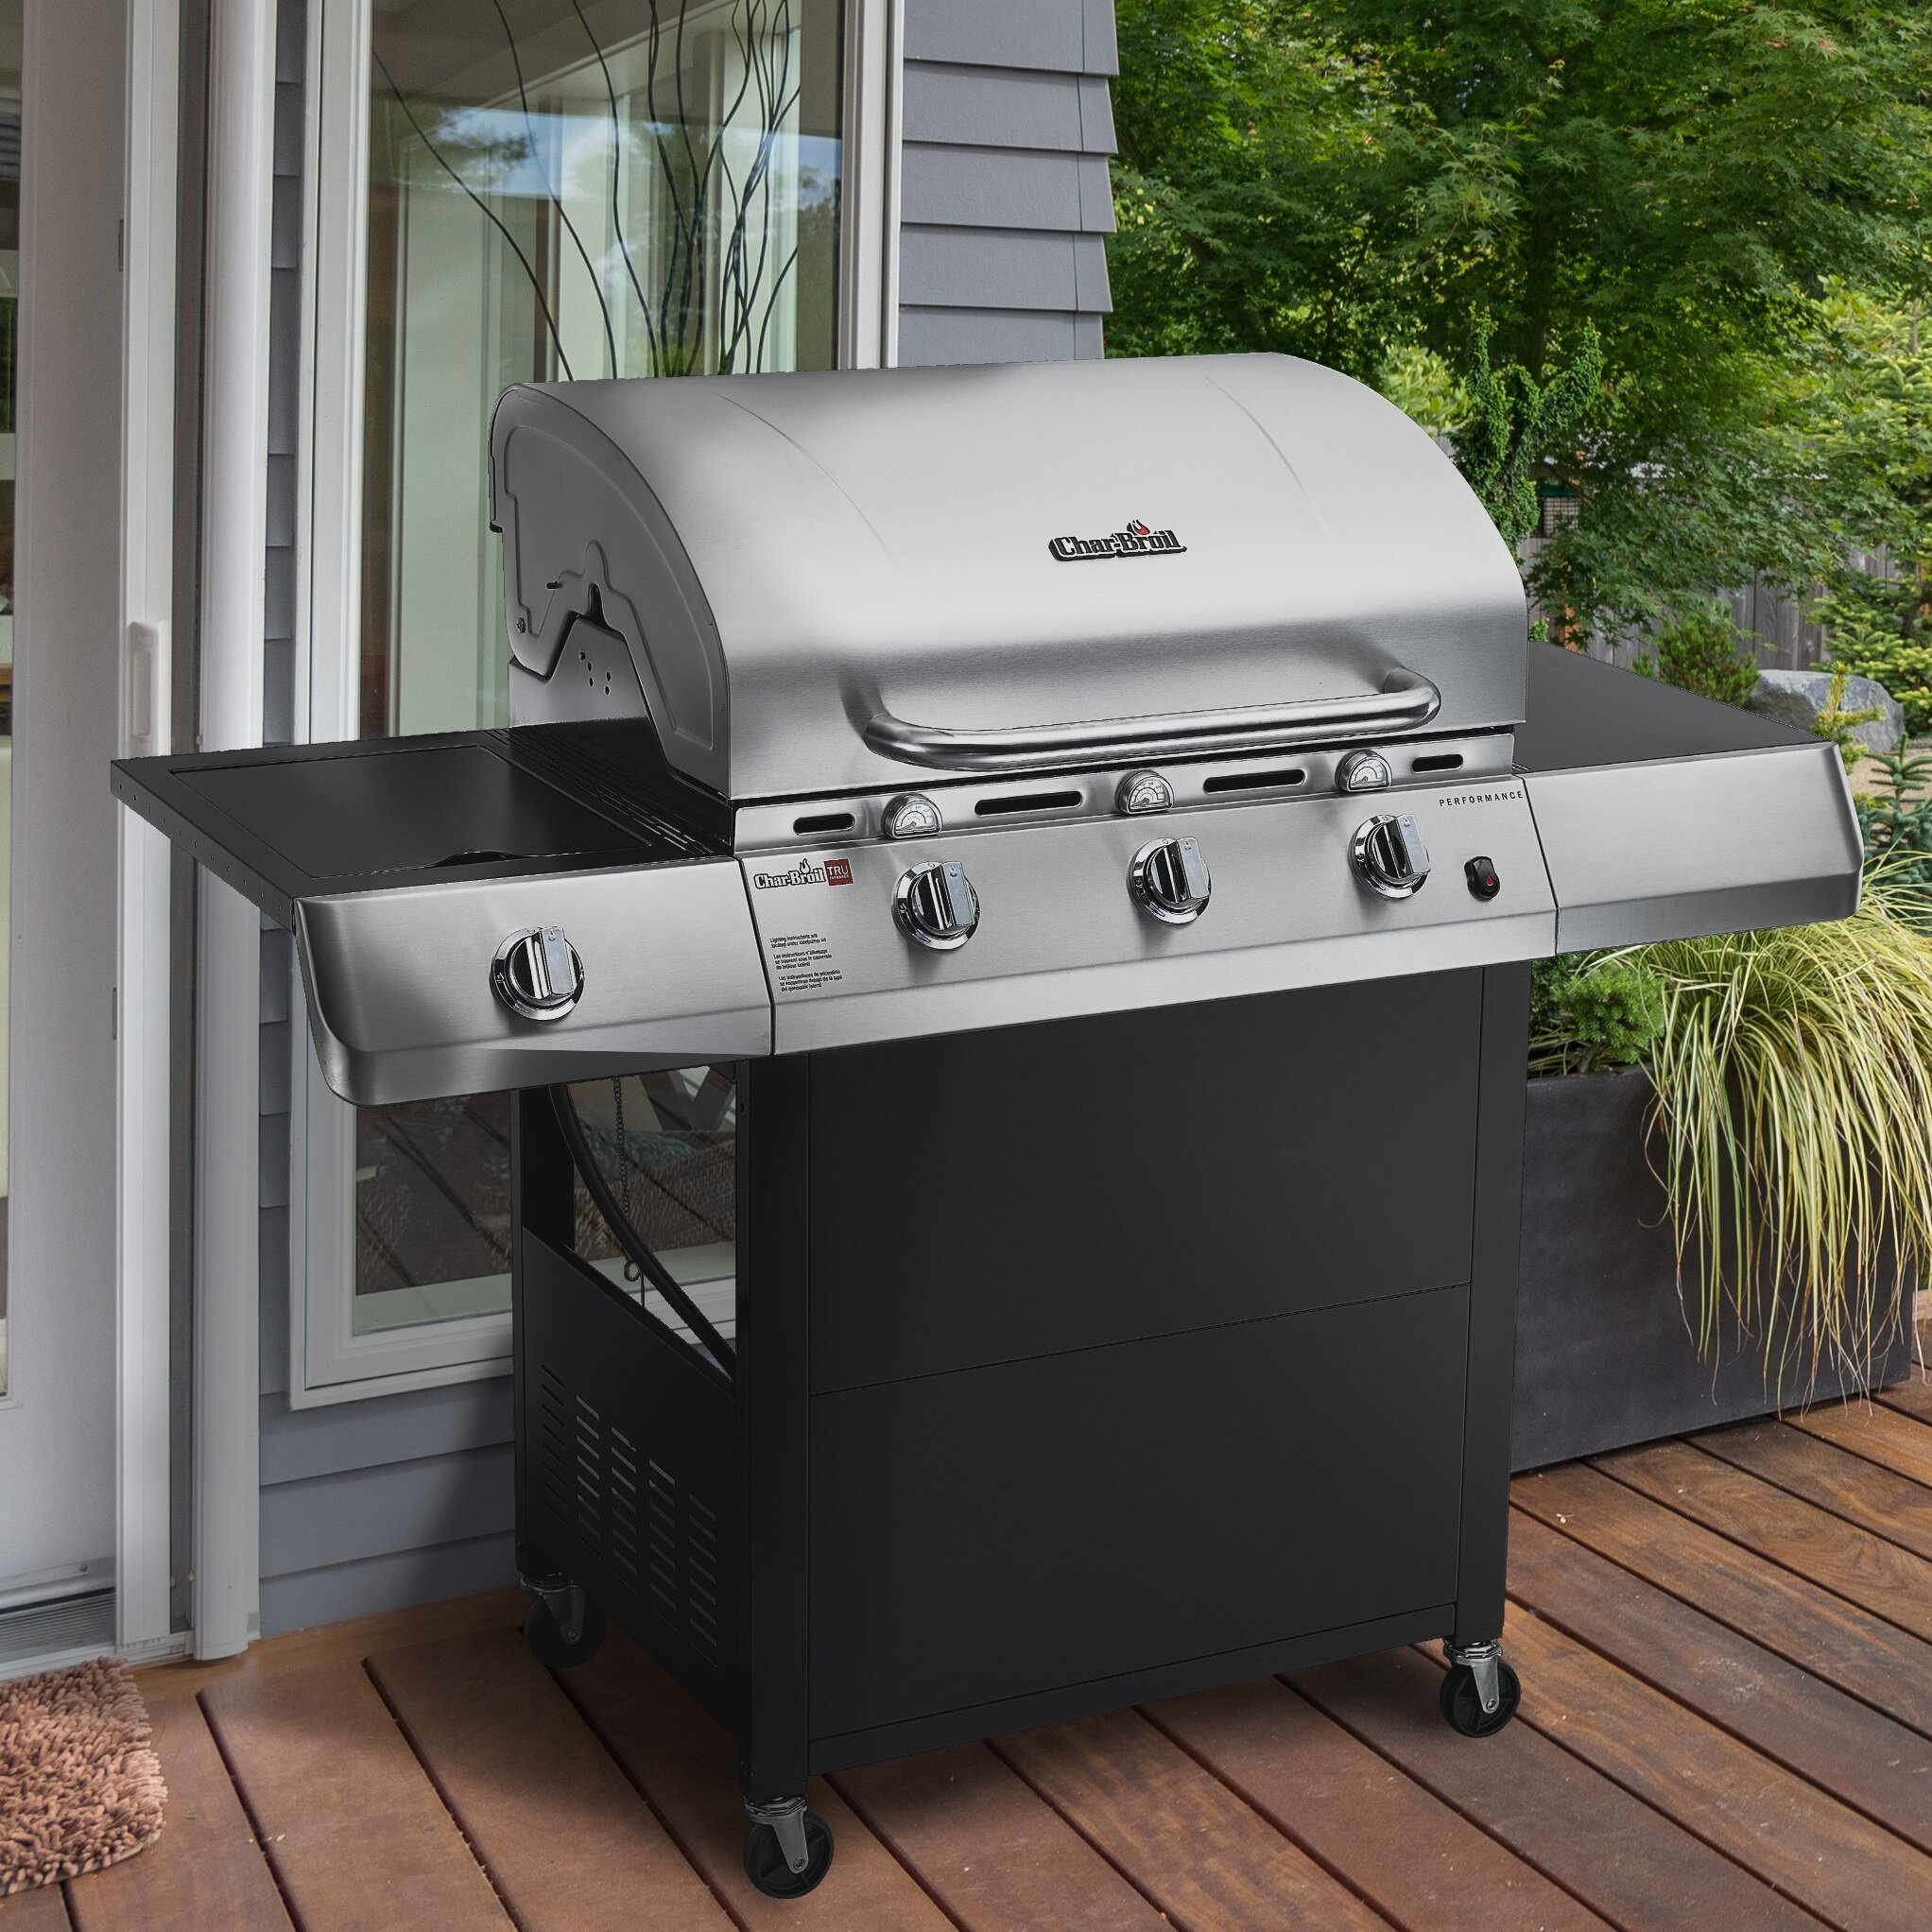 Sides On The Grill: CharBroil TRU-Infrared Performance 3 Burner Gas Grill With